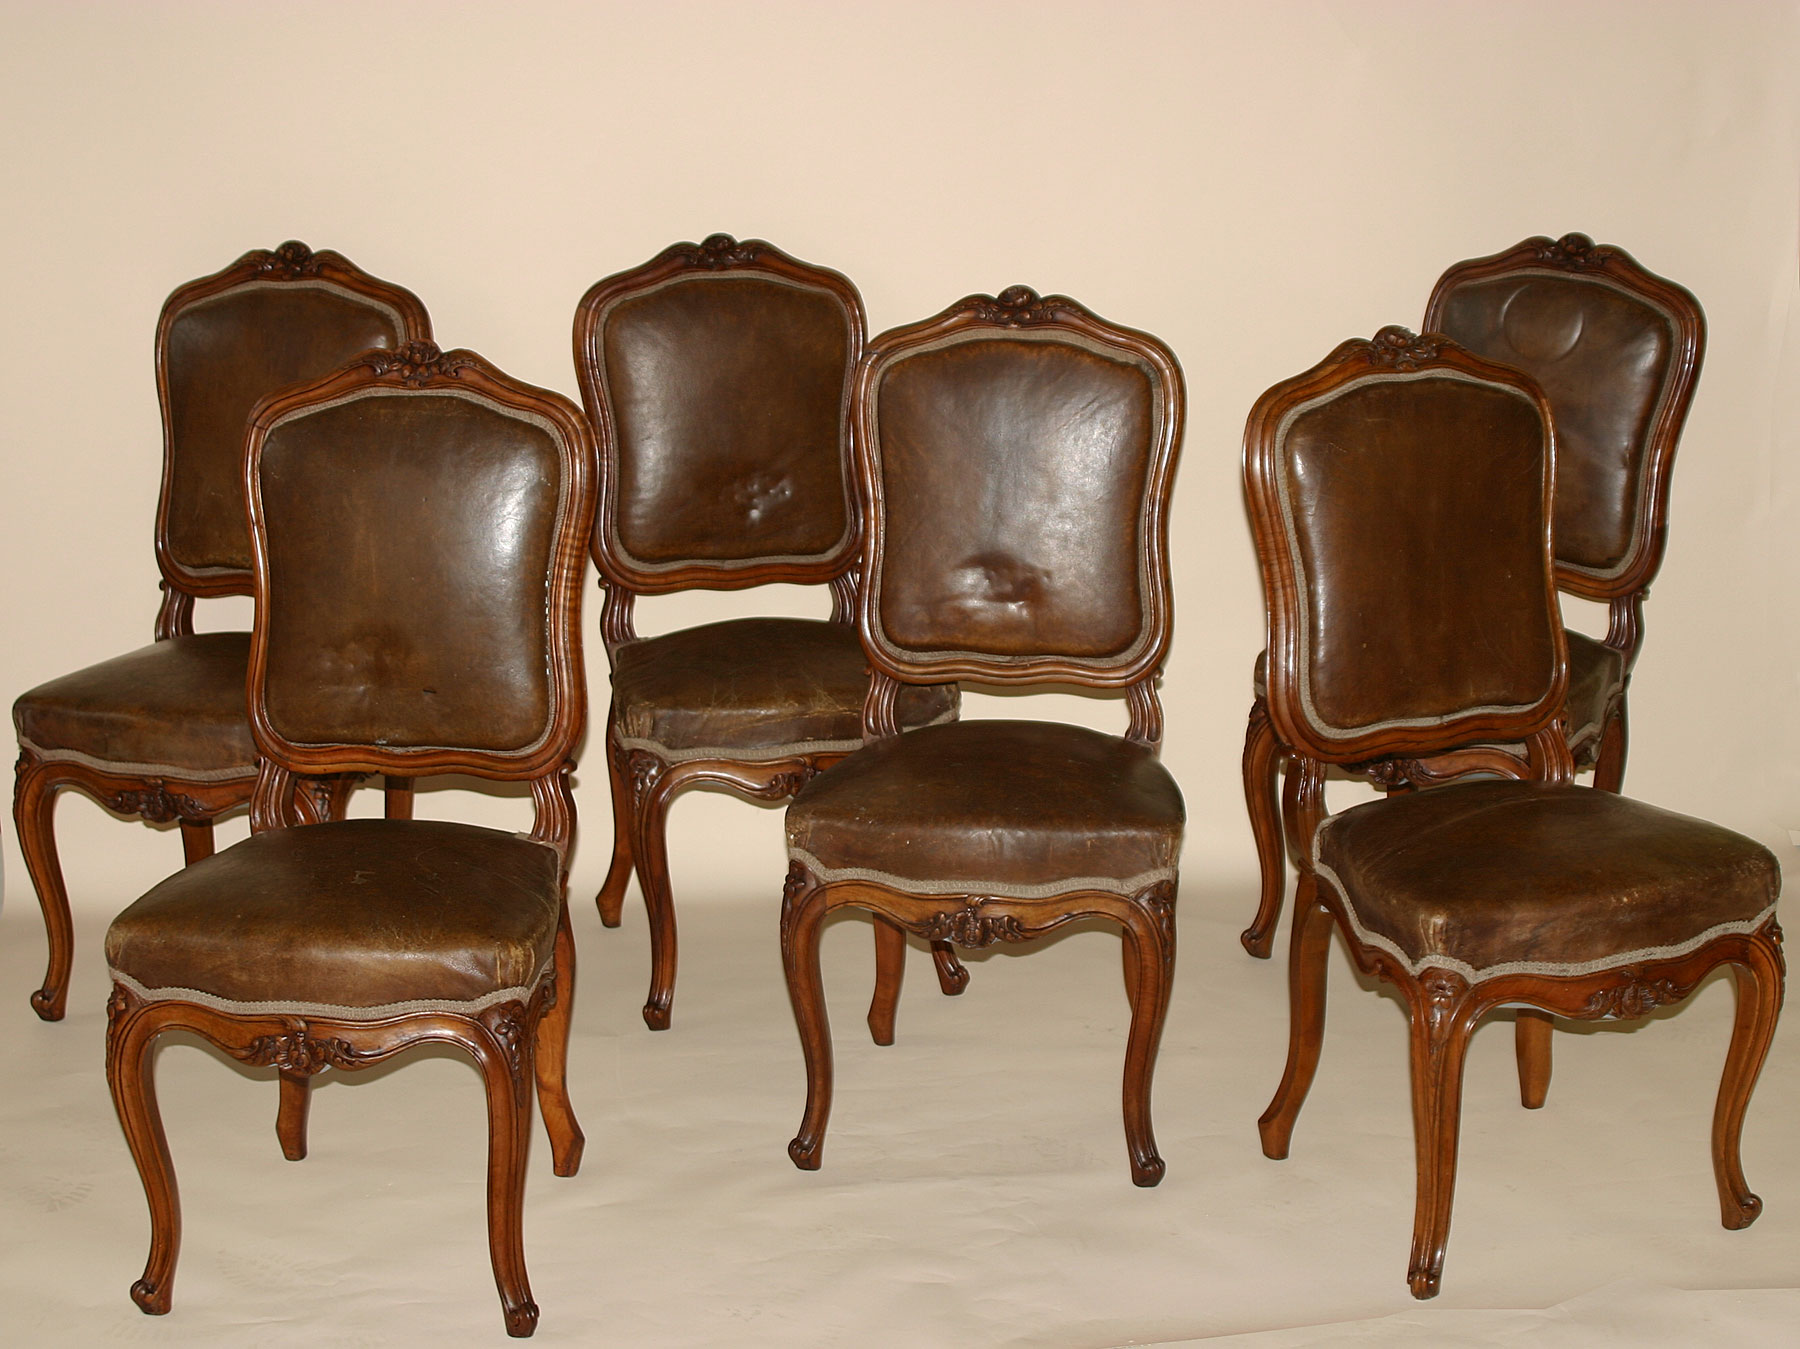 Chaise Louis Xv Set Of Six French Louis Xv Style Chaises For Sale